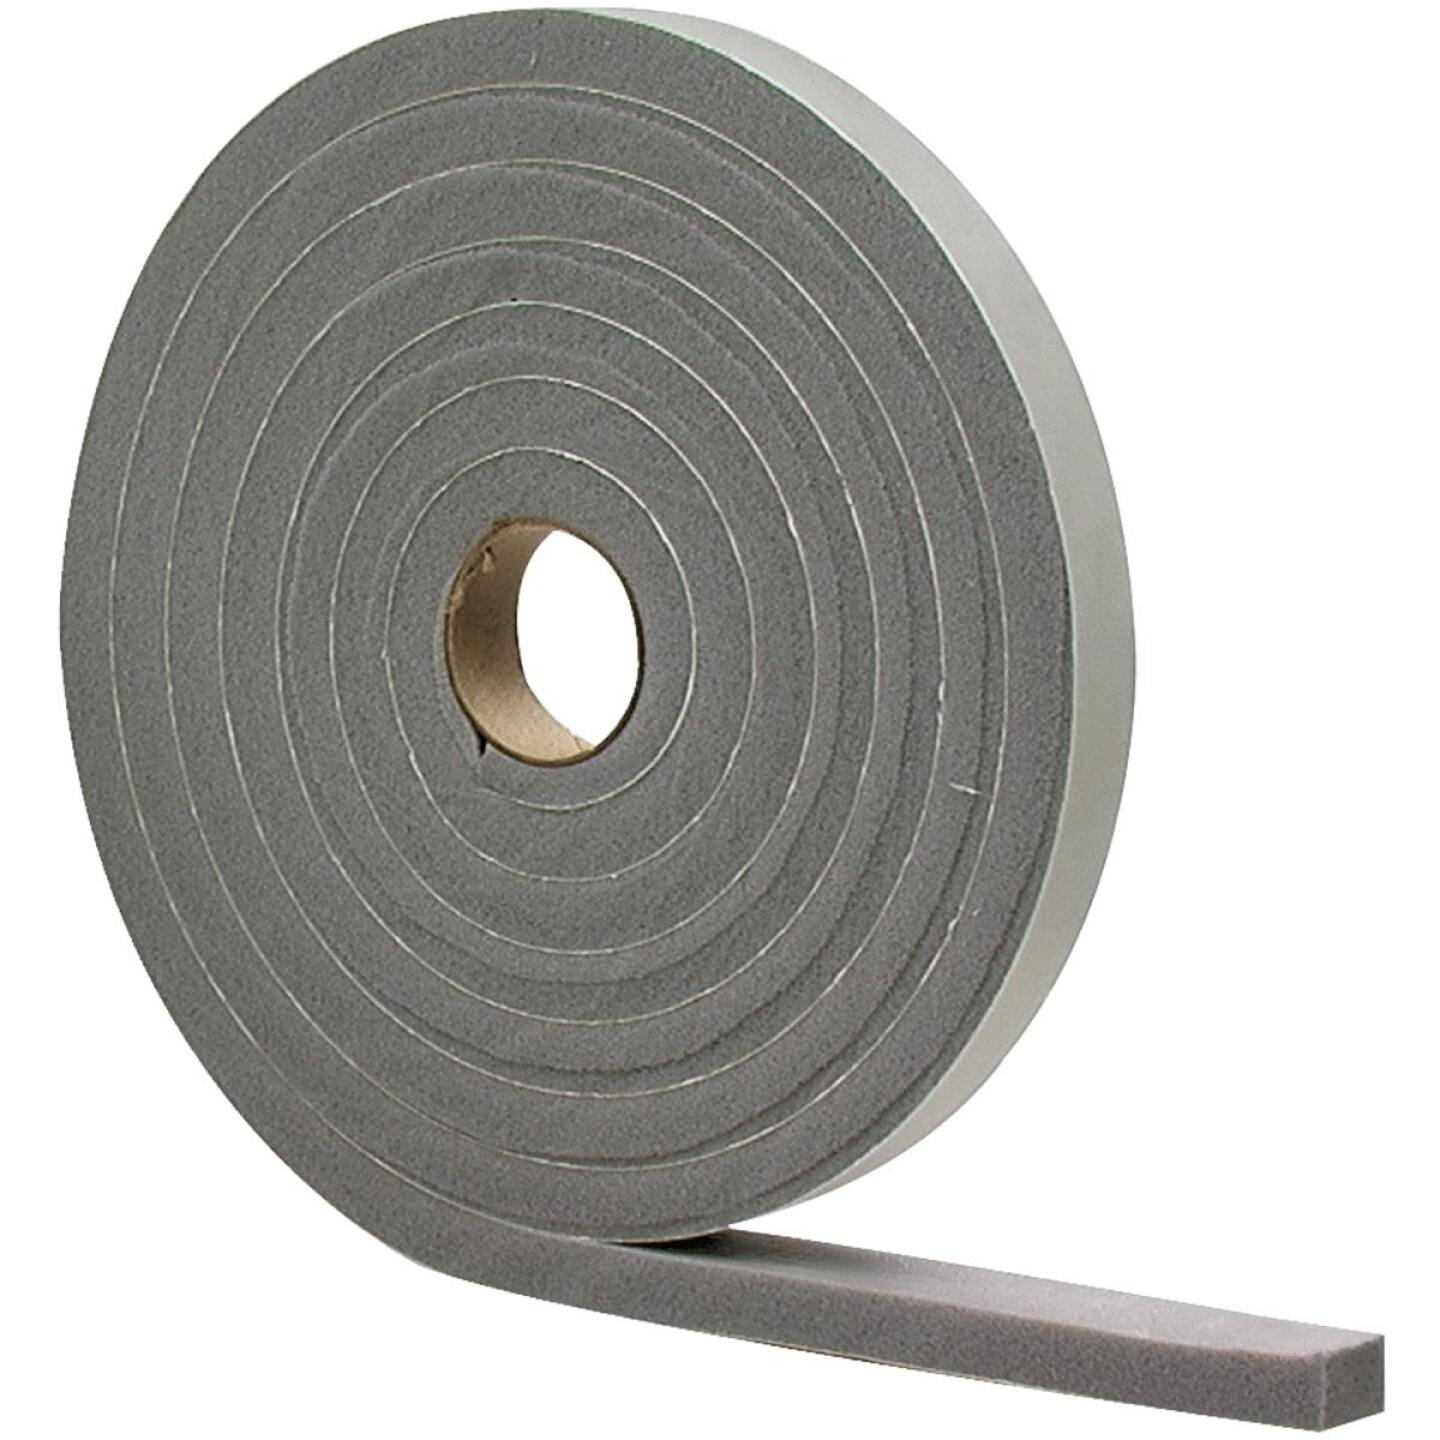 "M-D 1/2"" W x 1/4"" T x 17' L Gray Foam Closed Cell Weatherstrip Tape Image 2"